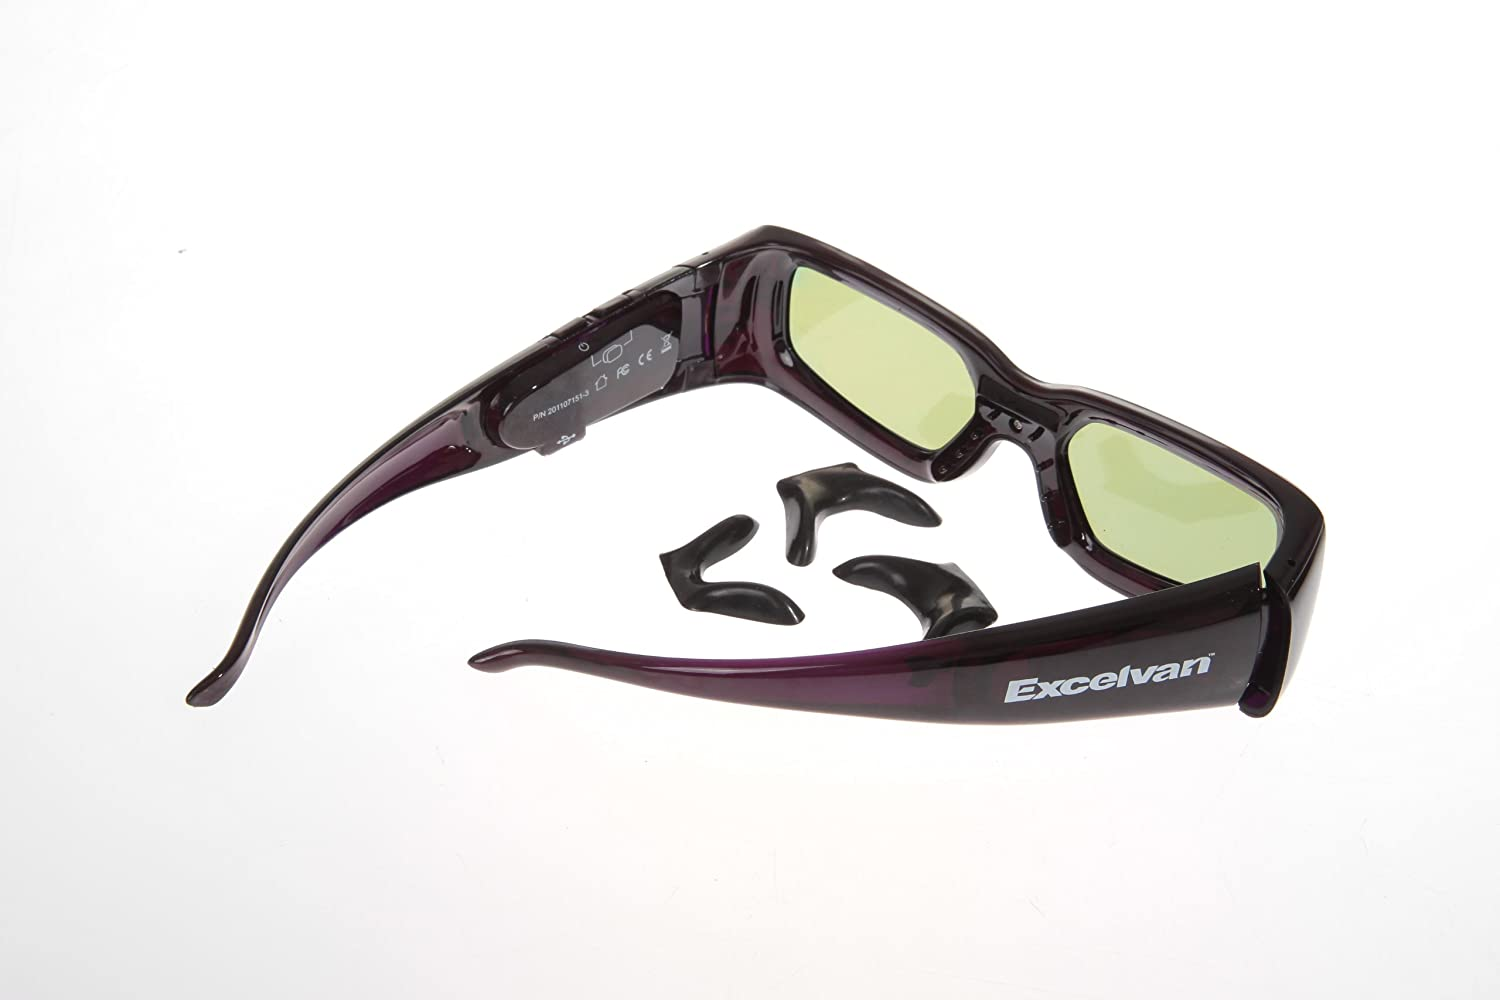 Excelvan 2 pairs 3D Active Glasses For NIB 2011 SONY TDG-BR250 Rechargeable sony tdg br250 3d очки